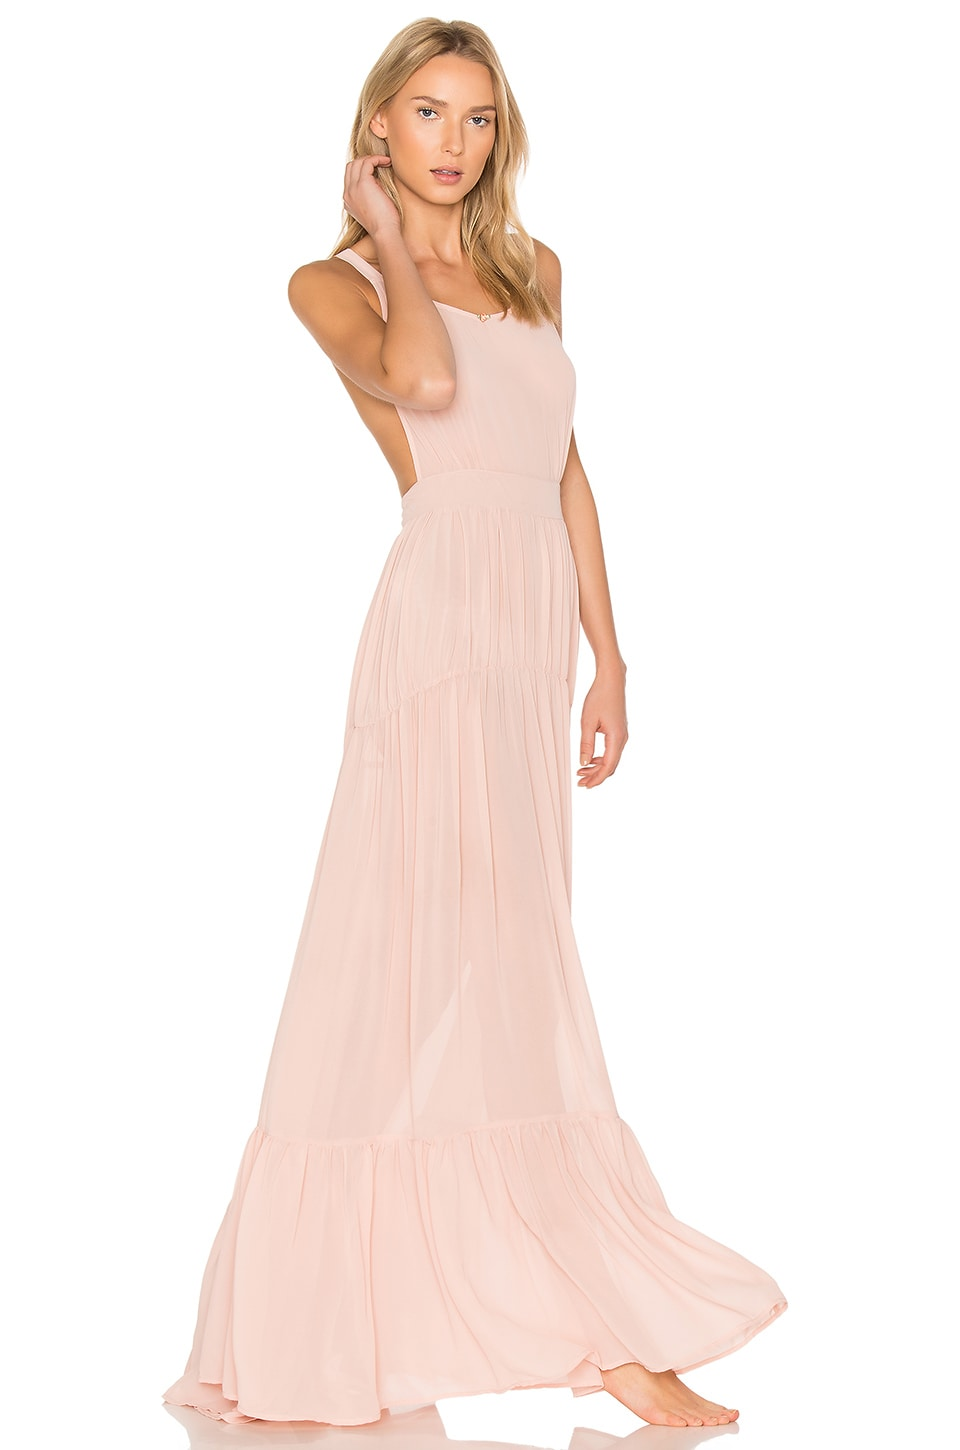 Hopeless LA Maxi Dress by Daydream Nation